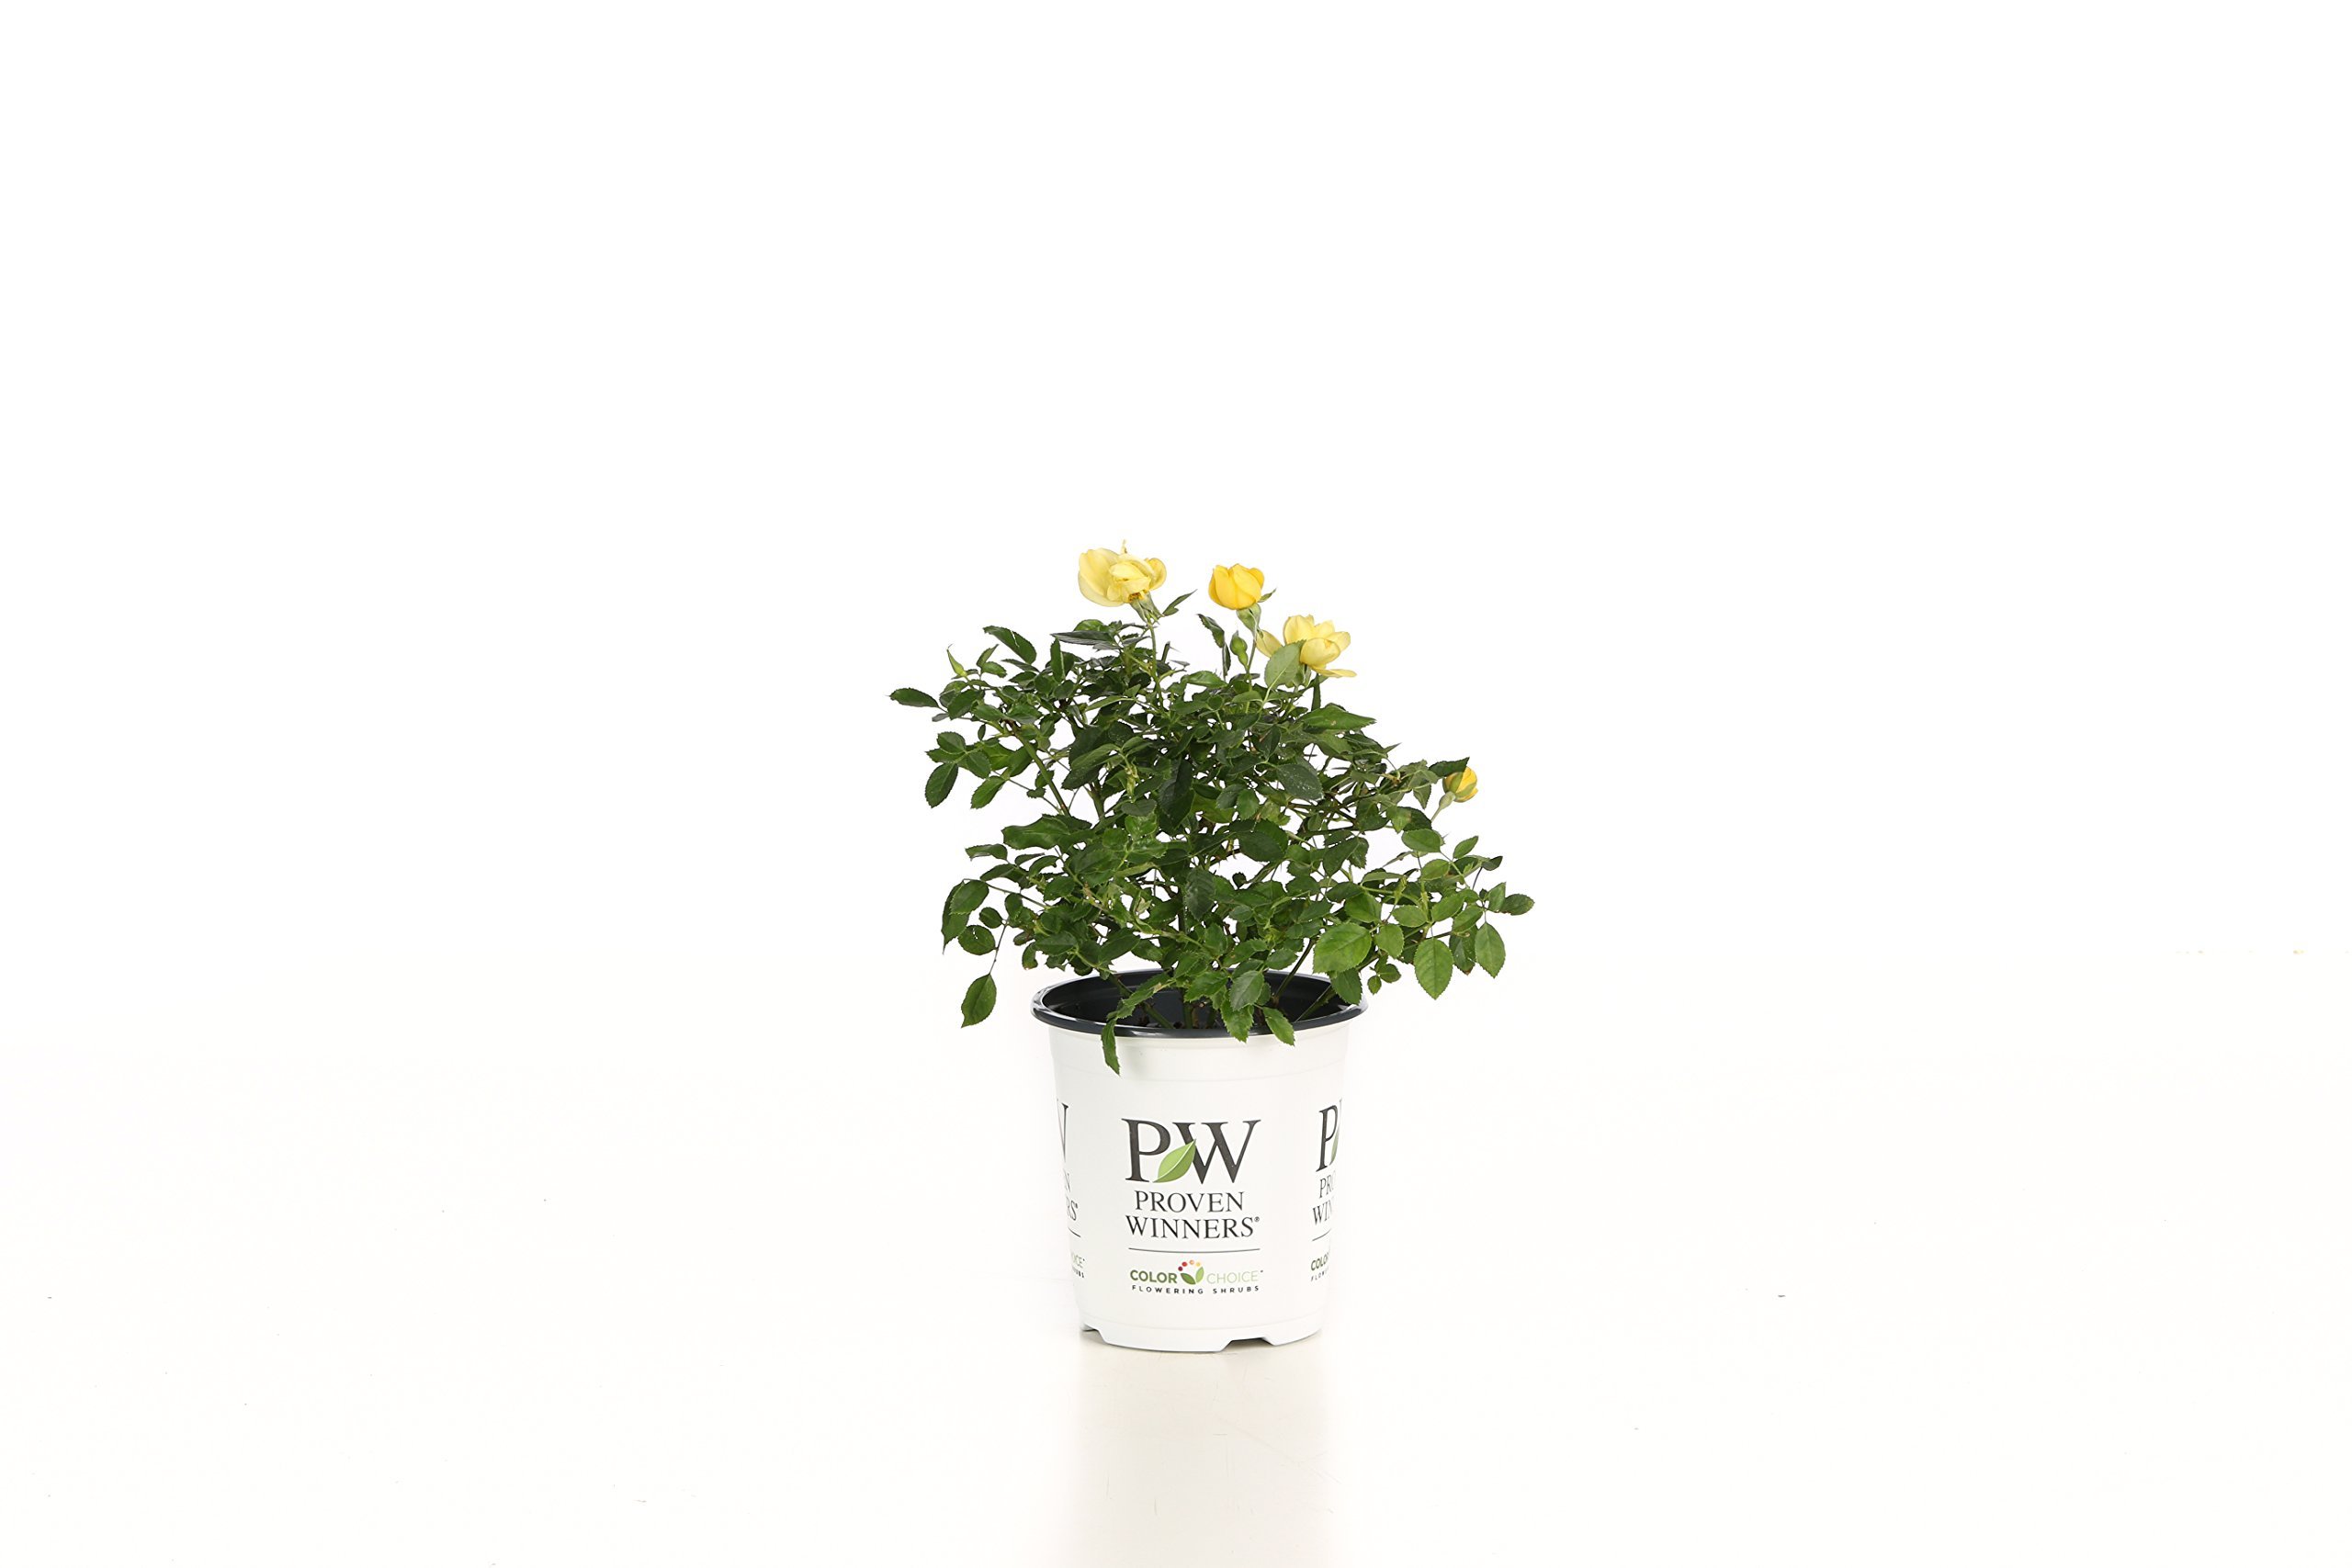 Cheap Shrub Yellow Flowers Find Shrub Yellow Flowers Deals On Line